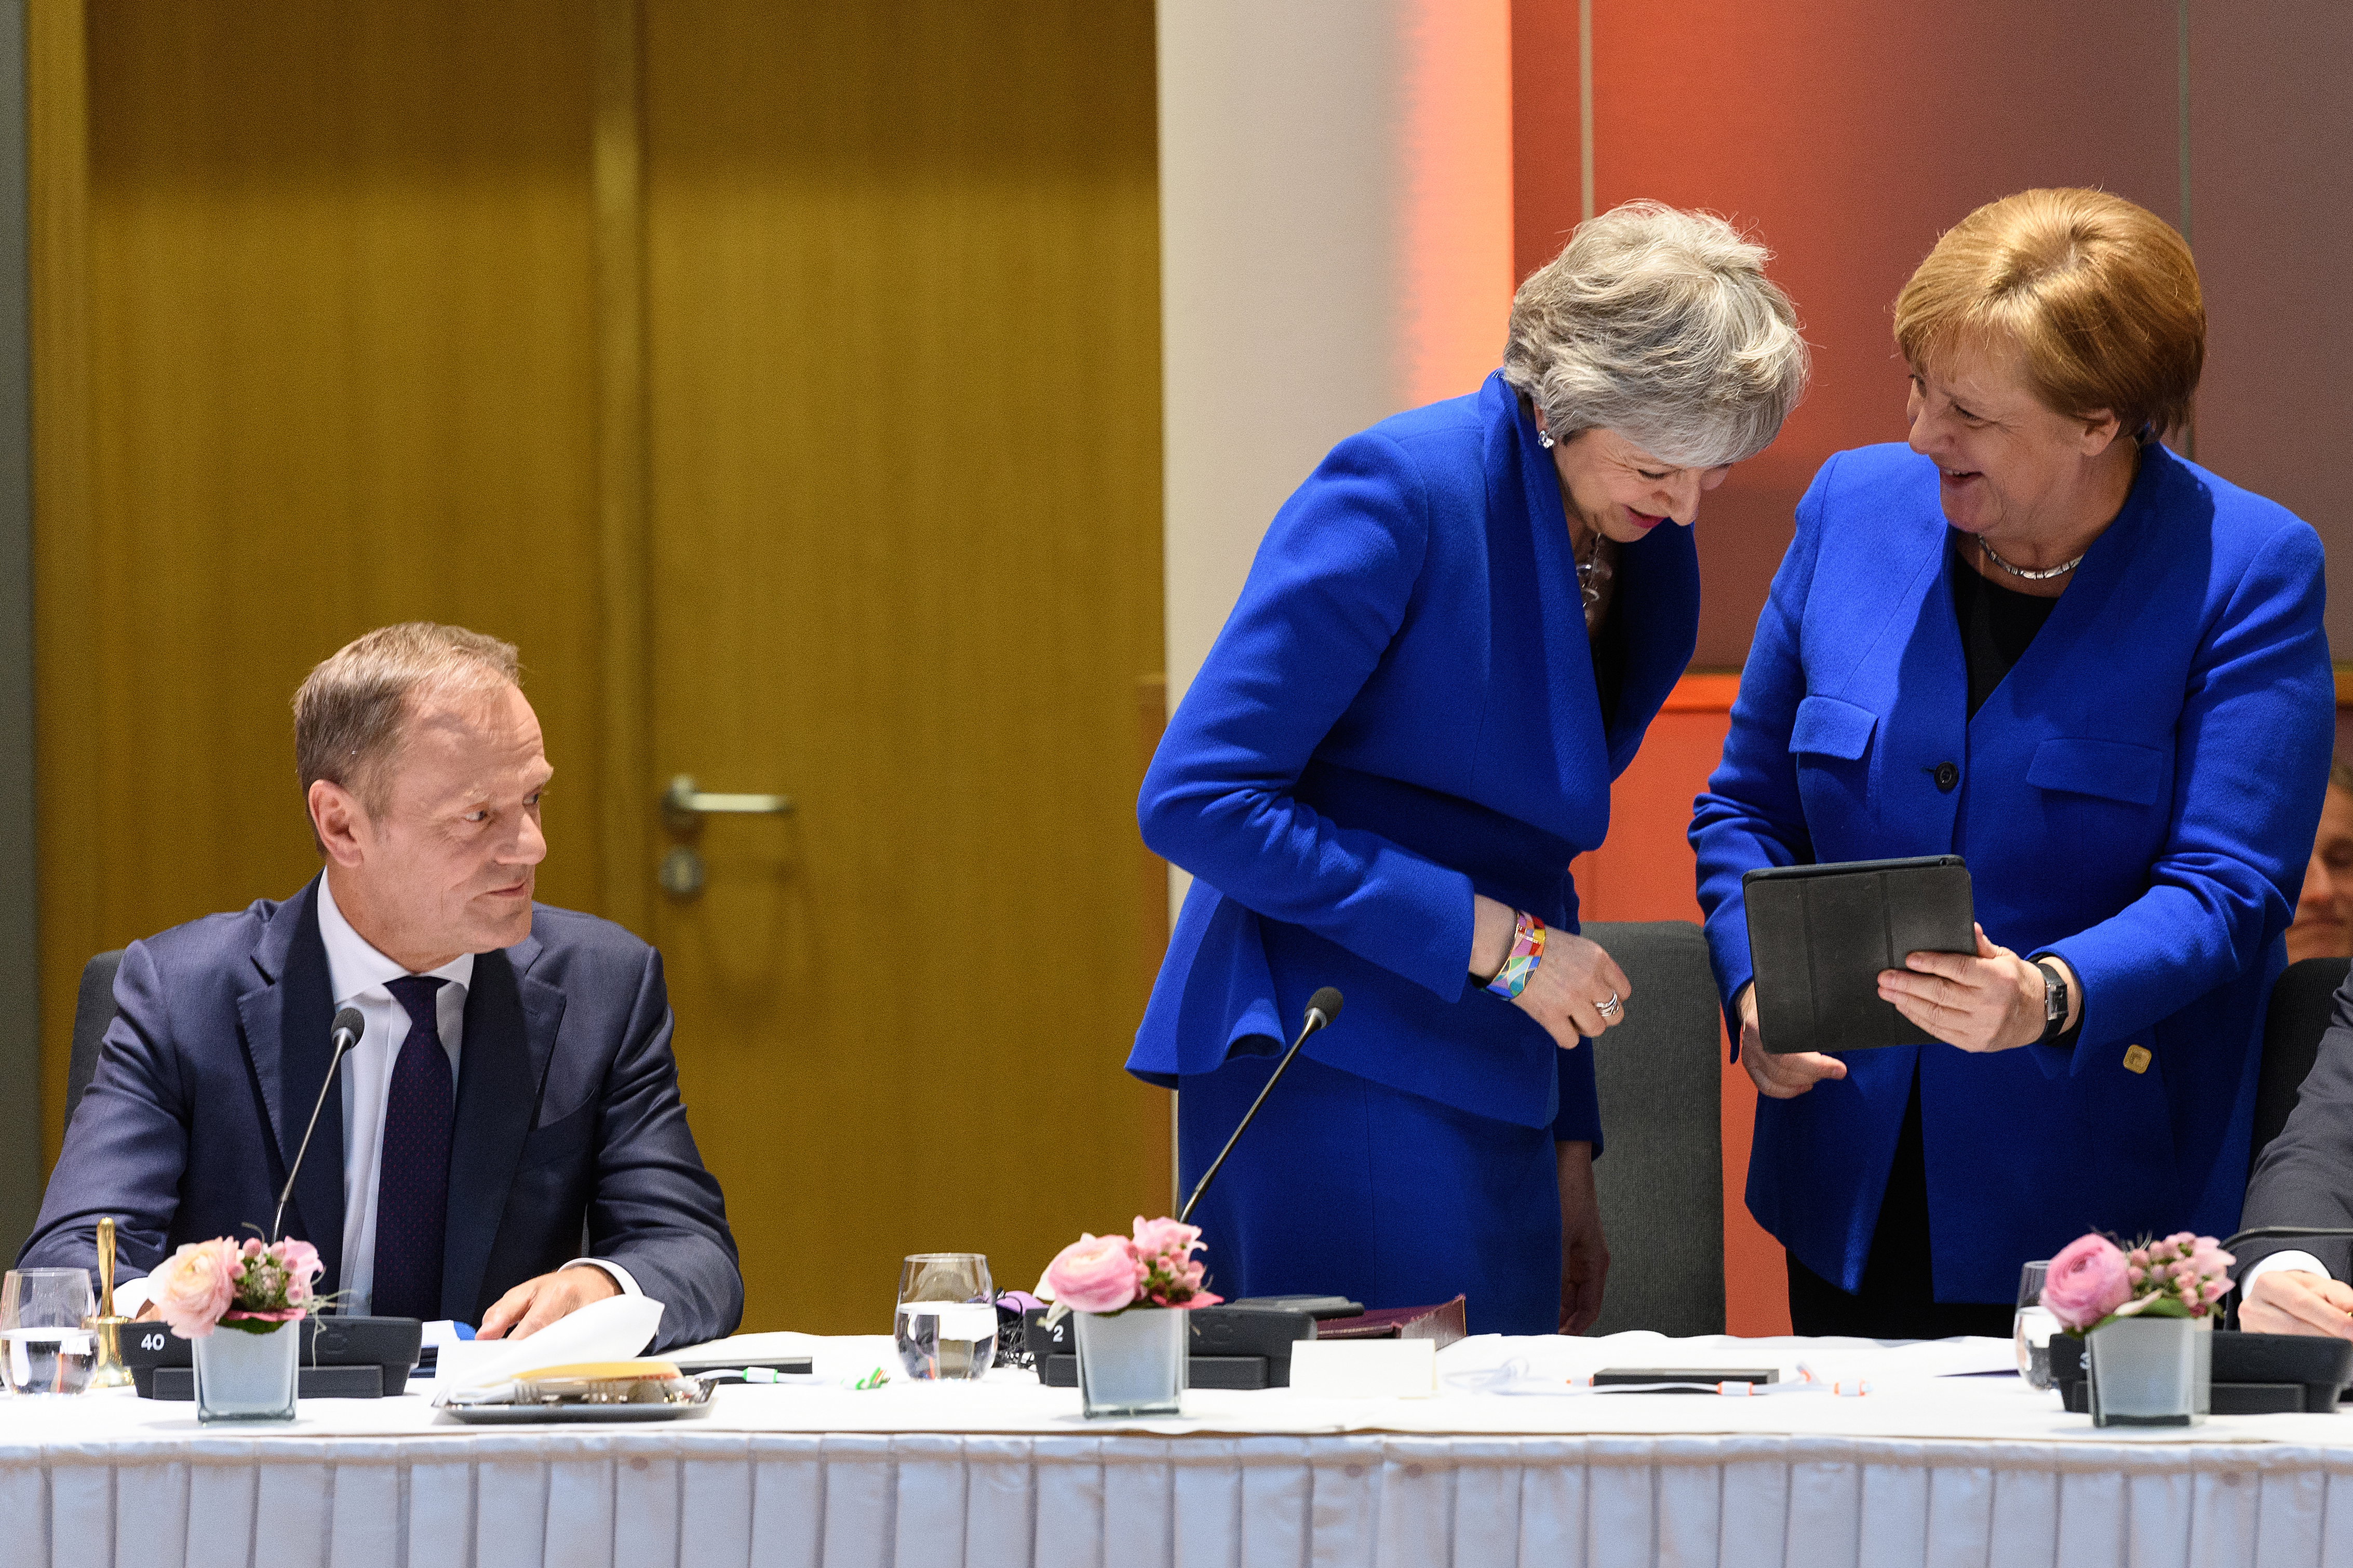 (L-R) President of the European Council Donald Tusk, British Prime Minister Theresa May and German Chancellor Angela Merkel attend a round table meeting on April 10, 2019 in Brussels, Belgium. (Photo by Leon Neal - Pool/Getty Images)